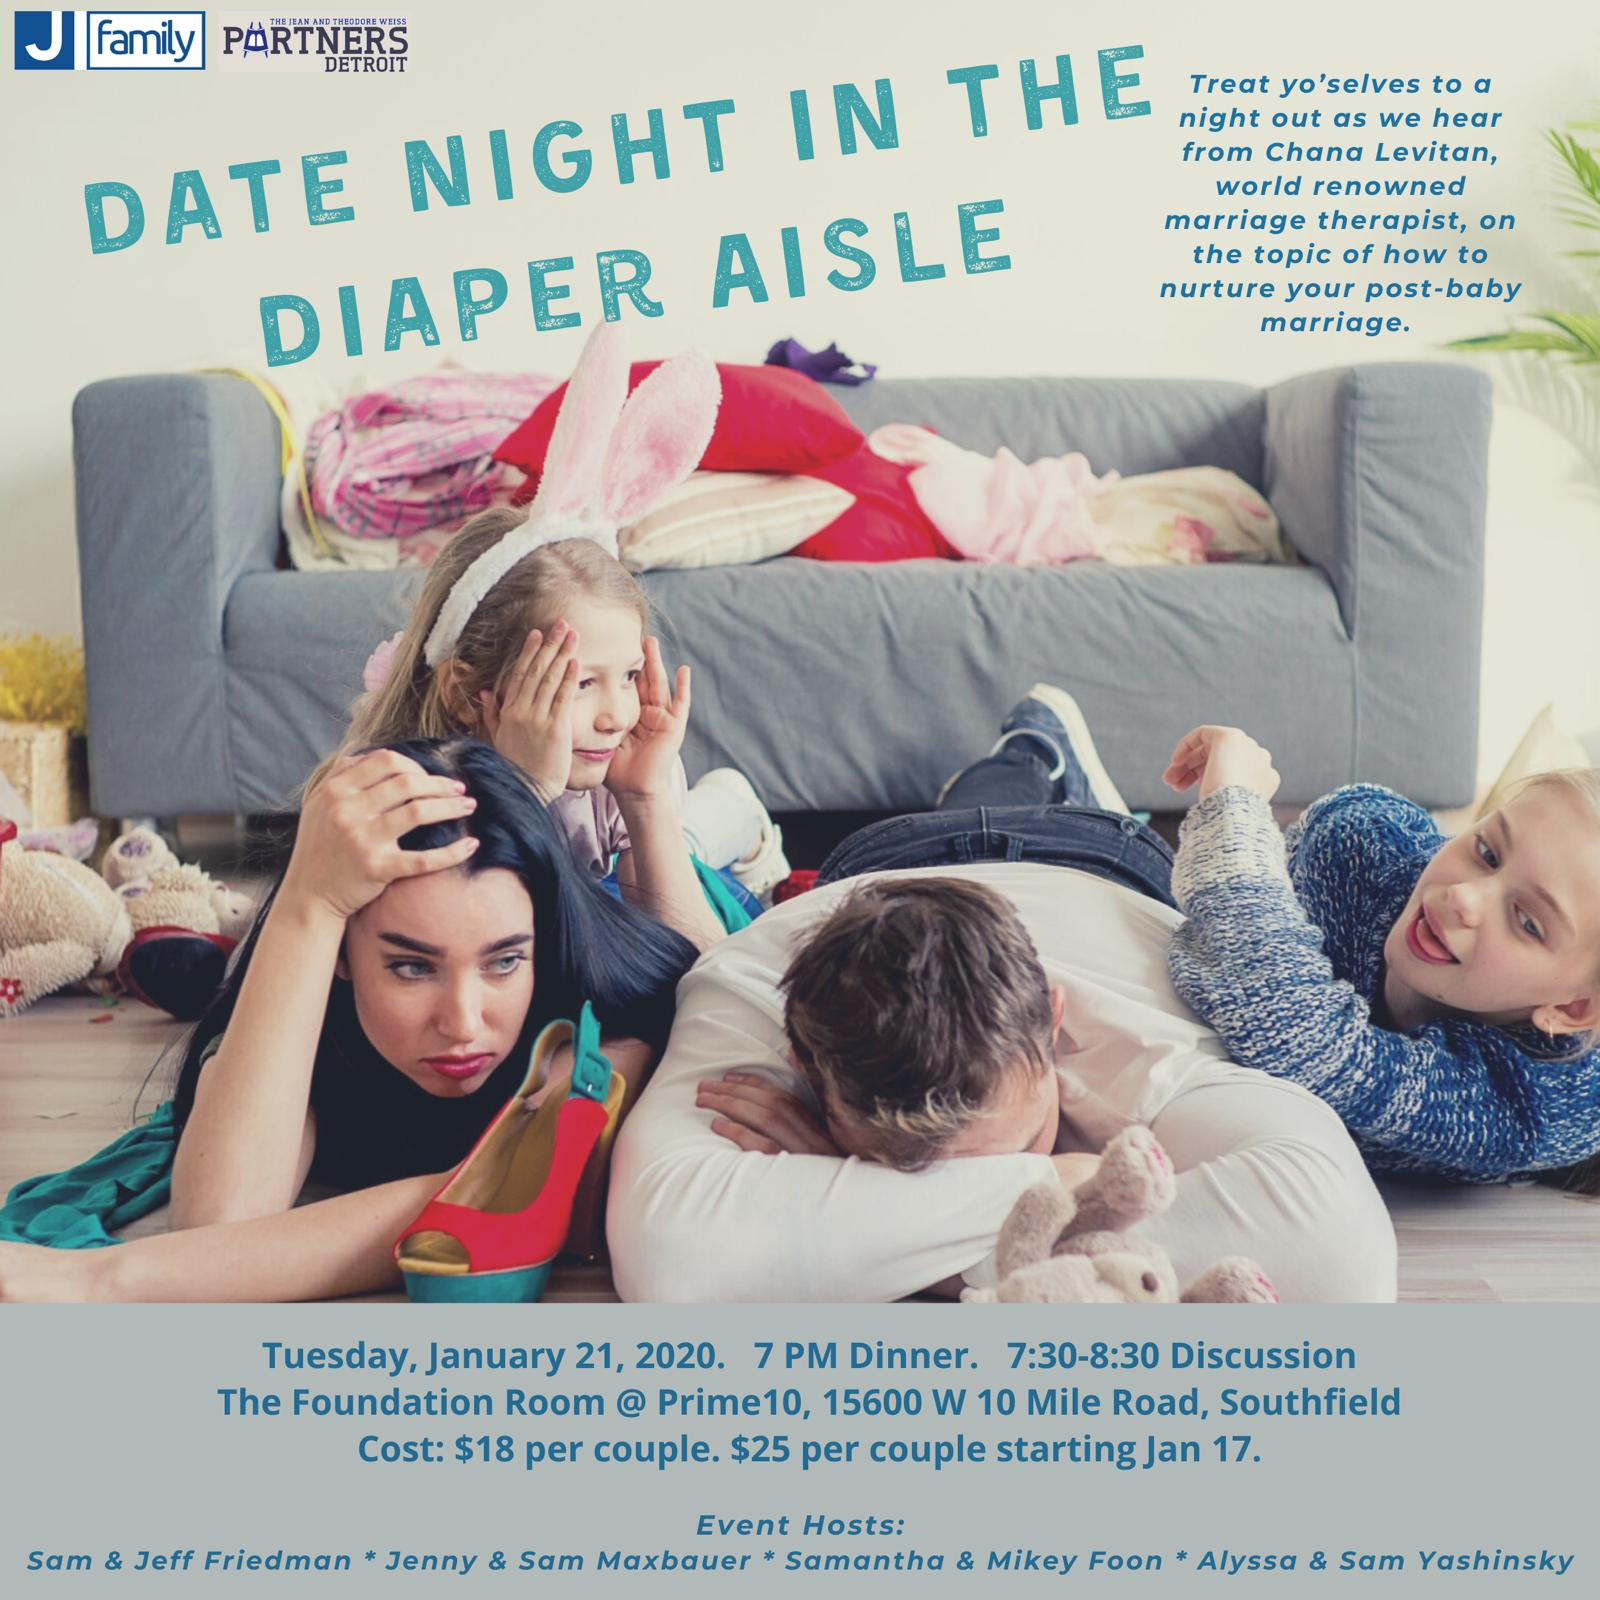 Date Night in the Diaper Aisle Dinner and Discussion with Mrs. Chana Levitan